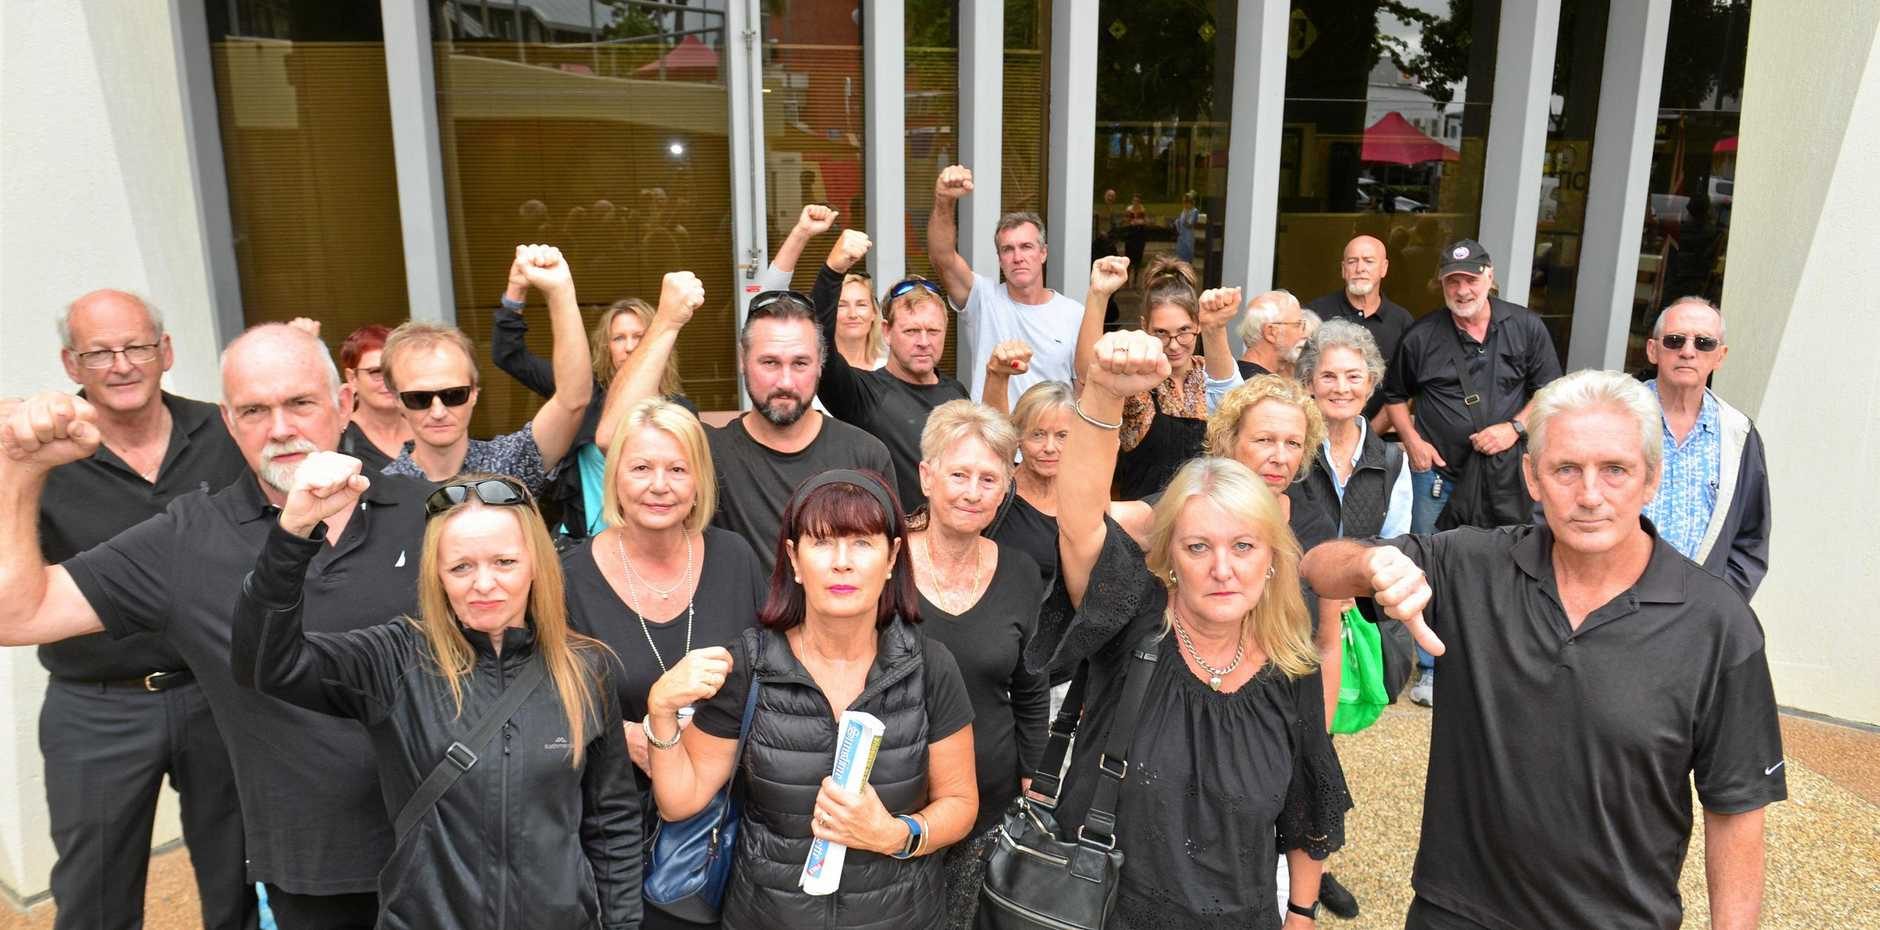 Buddina residents dressed in black to protest outside City Hall ahead of a decision on a a 73-unit apartment towner. .